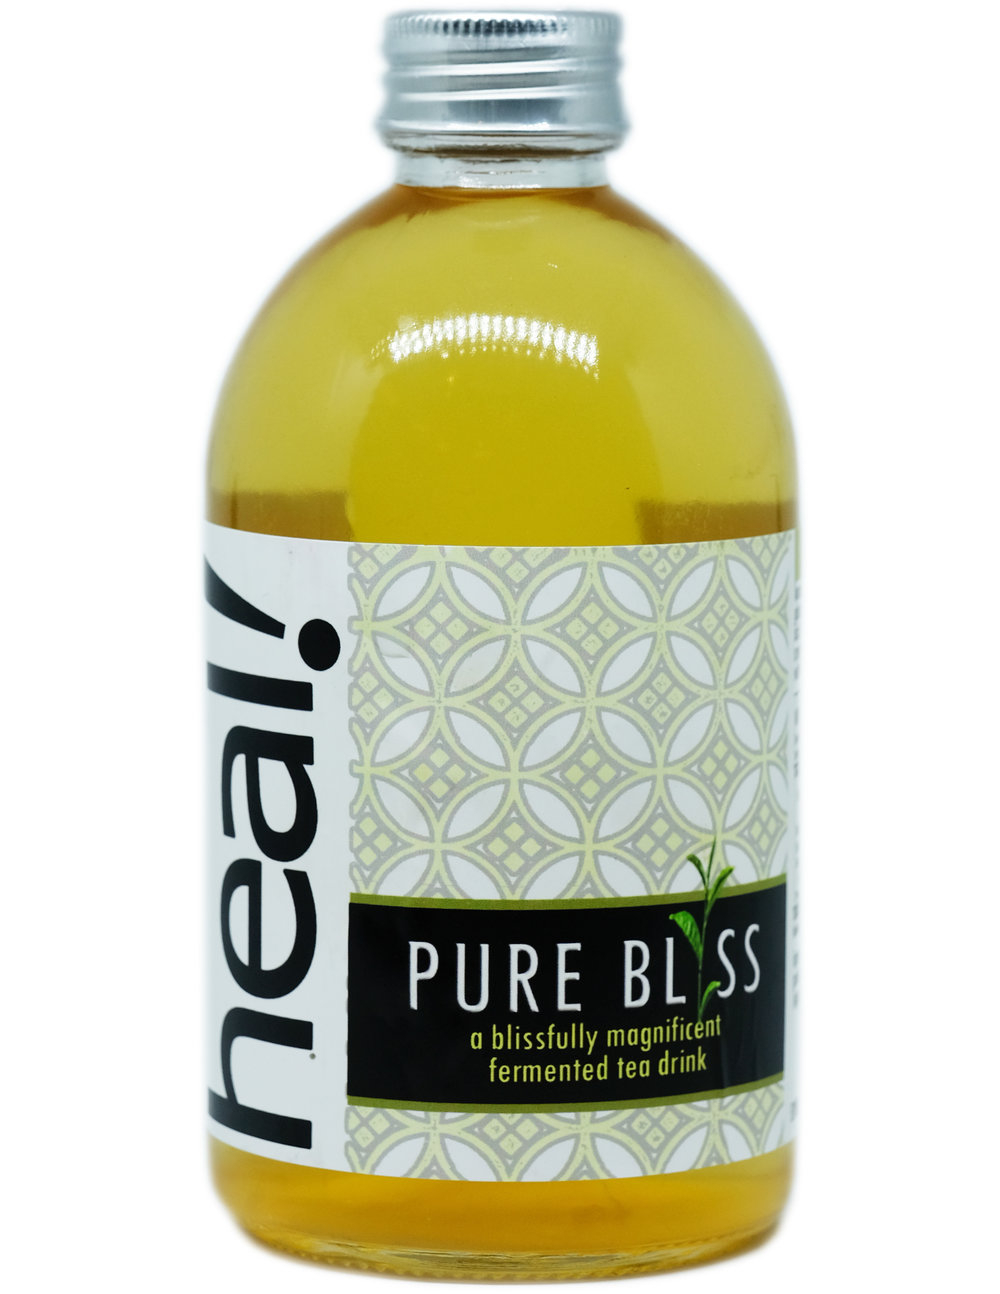 Pure Bliss is a pure kombucha with no flavor additions. It highlights the quality of our Javanese oolong tea in our kombucha brew. Our loose oolong tea is one of the finest tea leaves we possibly can find. Our oolong is sweet, fruity with honey aroma.  Oolong tea (烏龍茶 wūlóng chá or black dragon tea), usually rakes higher price as the manufacture of oolong tea involves repeating stages to achieve the desired amount of bruising and browning of leaves. Withering, rolling, shaping, and firing are similar to black tea, but much more attention to timing and temperature is necessary. In Fujian, China, they use this tea as ceremony tea.  Why do we use the best tea possible (read: expensive)? Because the quality of final kombucha depends on the choice of tea. After all, kombucha production takes only four inputs: water, tea, sugar, and time.  Pure Bliss is easy on the palate, making it a good starter kombucha for those who want to start a kombucha regimen.  Ingredients: Mineral Water, Kombucha Cultures, Java Oolong Tea, Natural Cane Sugar  Calorie 40, Sugar 3 grams per 175 ml before second fermentation, by which process reduces calorie and sugar content further and create fizz.  Packaged in 100% recyclable, reusable,  refundable  glass bottle. 370 ml.  RECIPE  click here   CONTACT US  click here